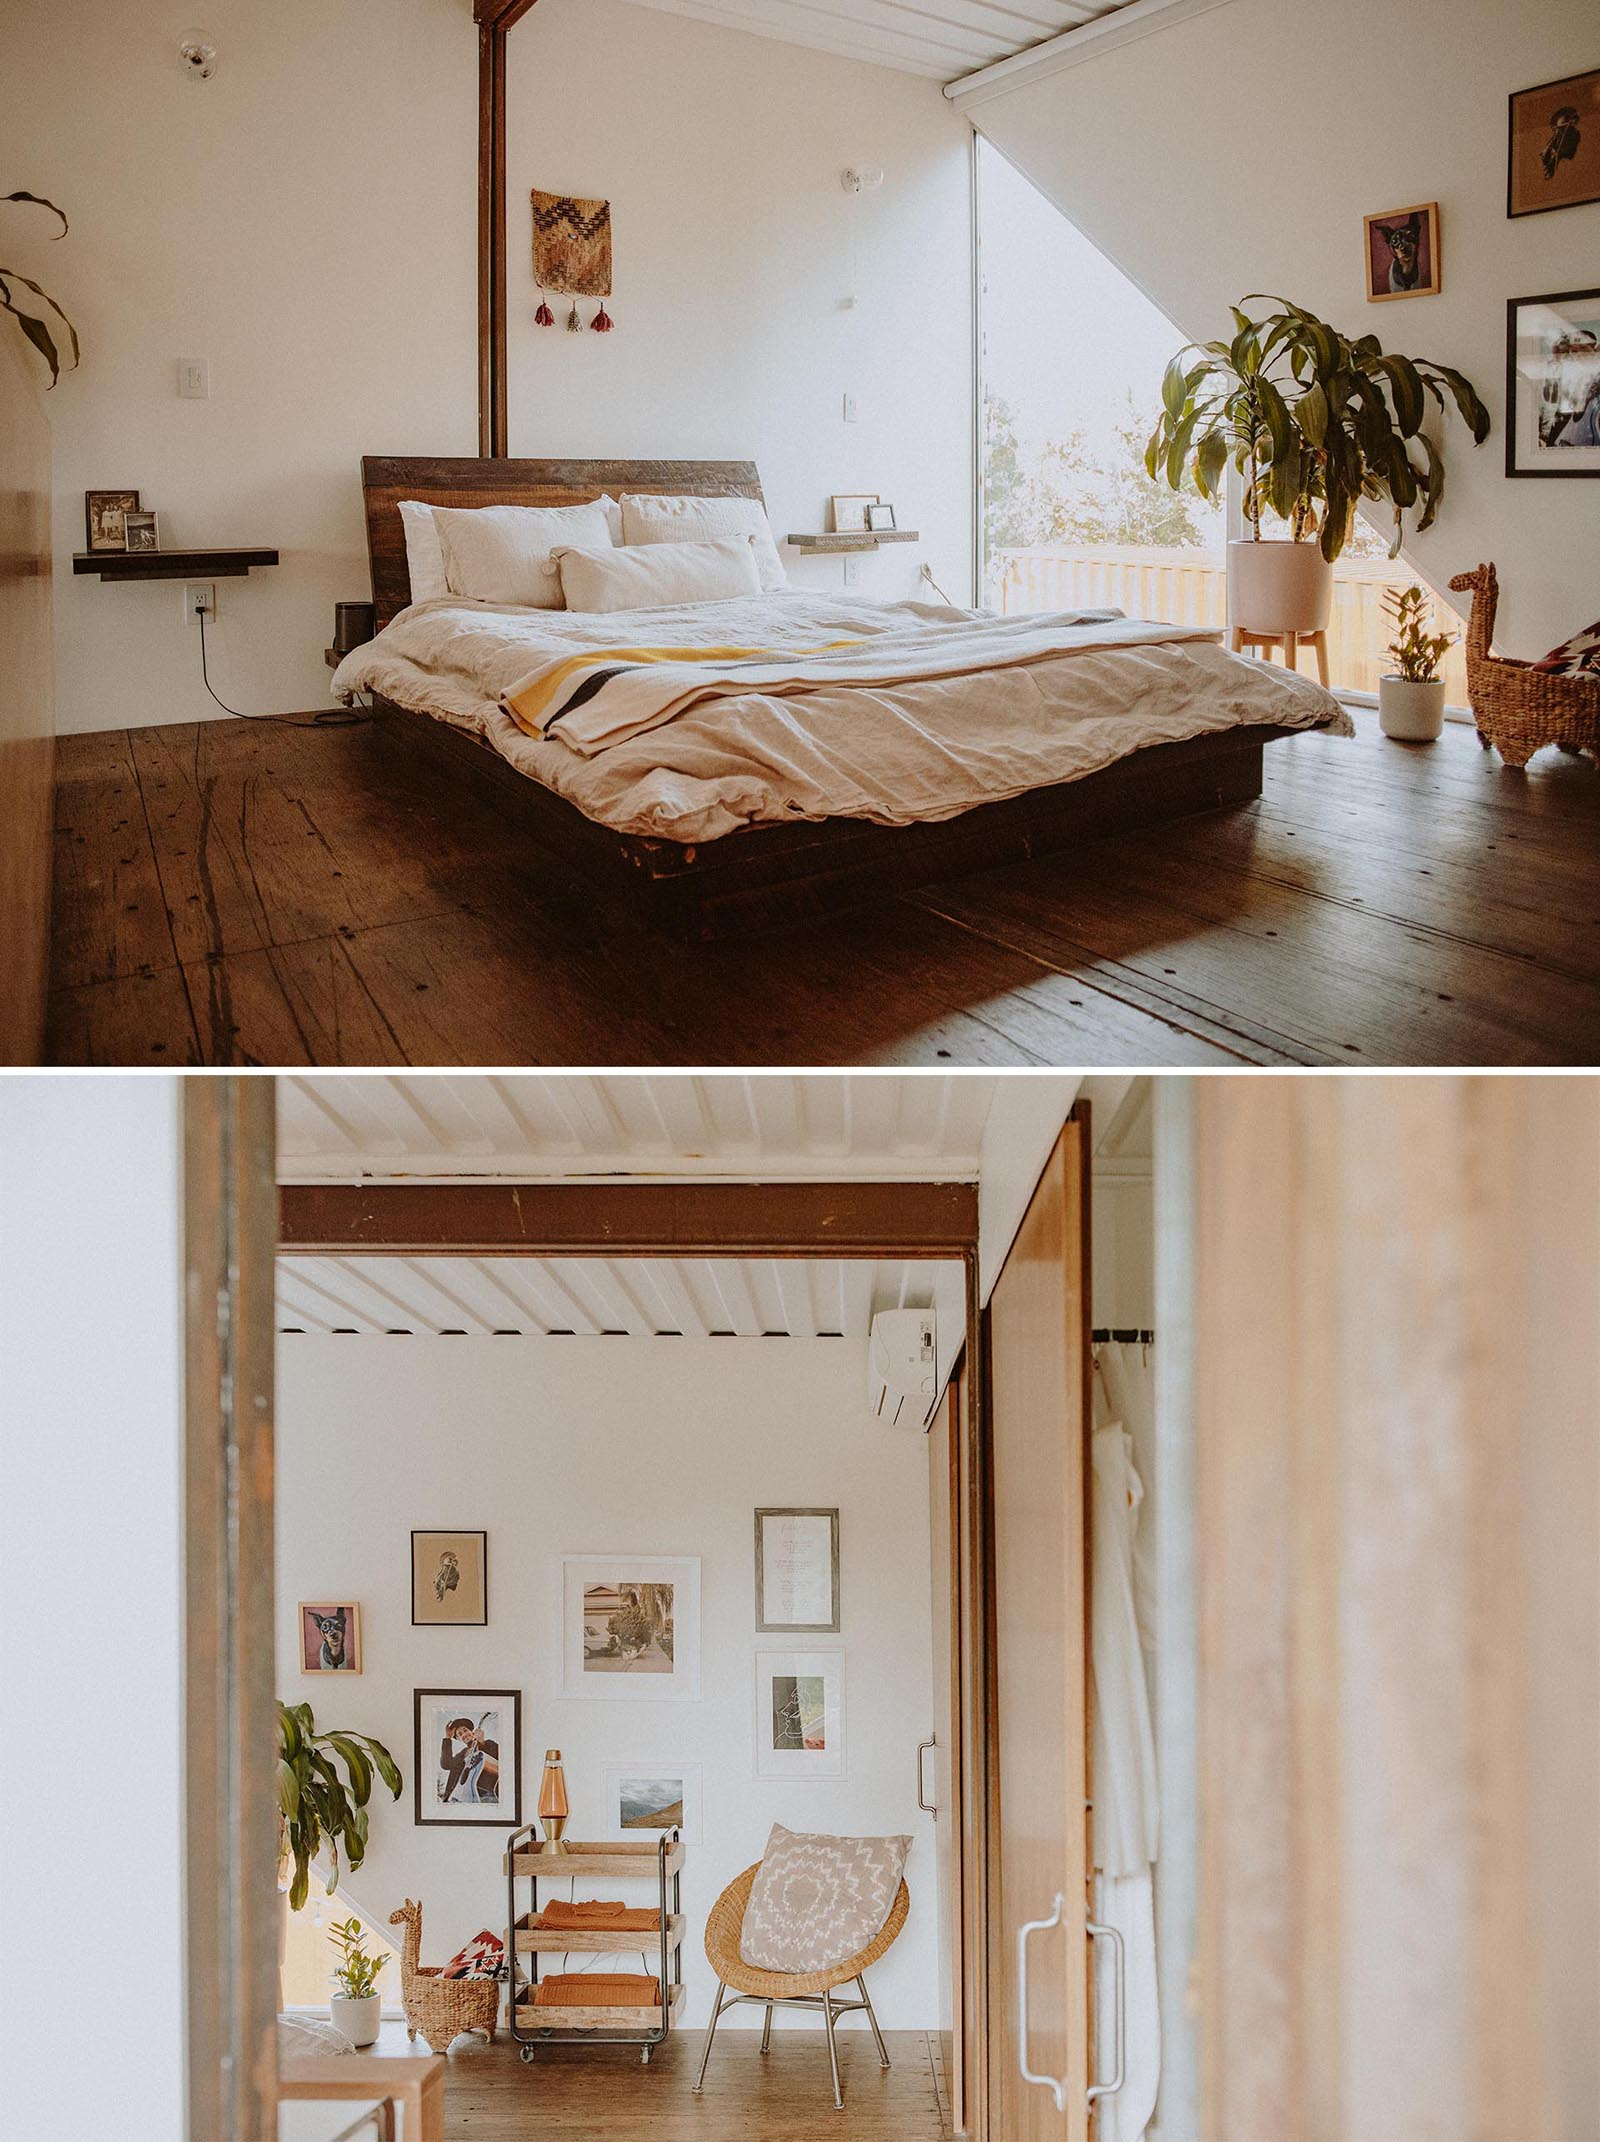 The master bedroom inside a modern shipping container home.